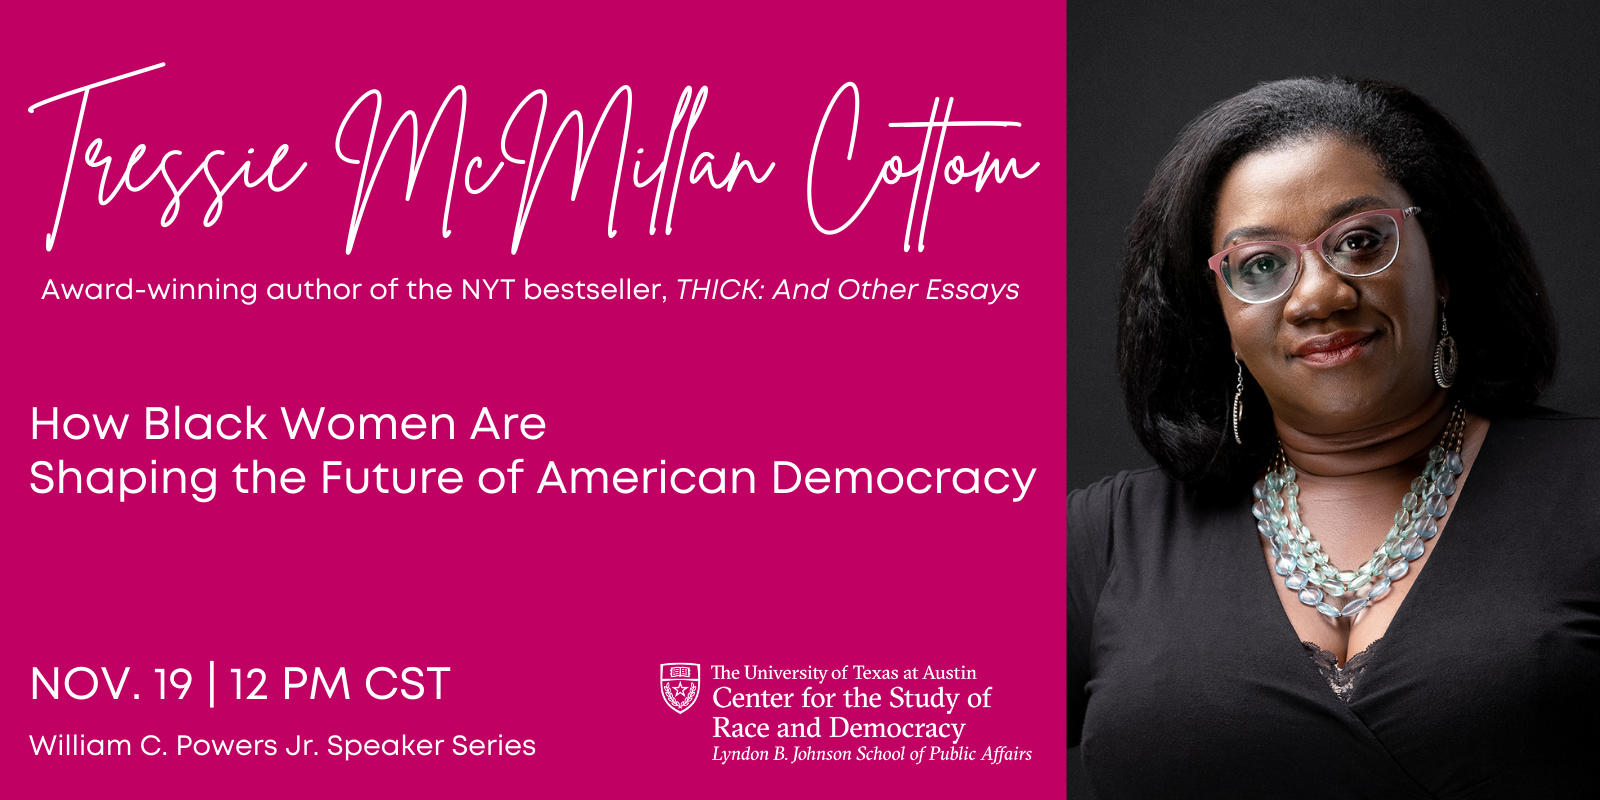 CSRD Webinar: How Black Women are Shaping the Future of American Democracy with Tressie McMillan Cottom